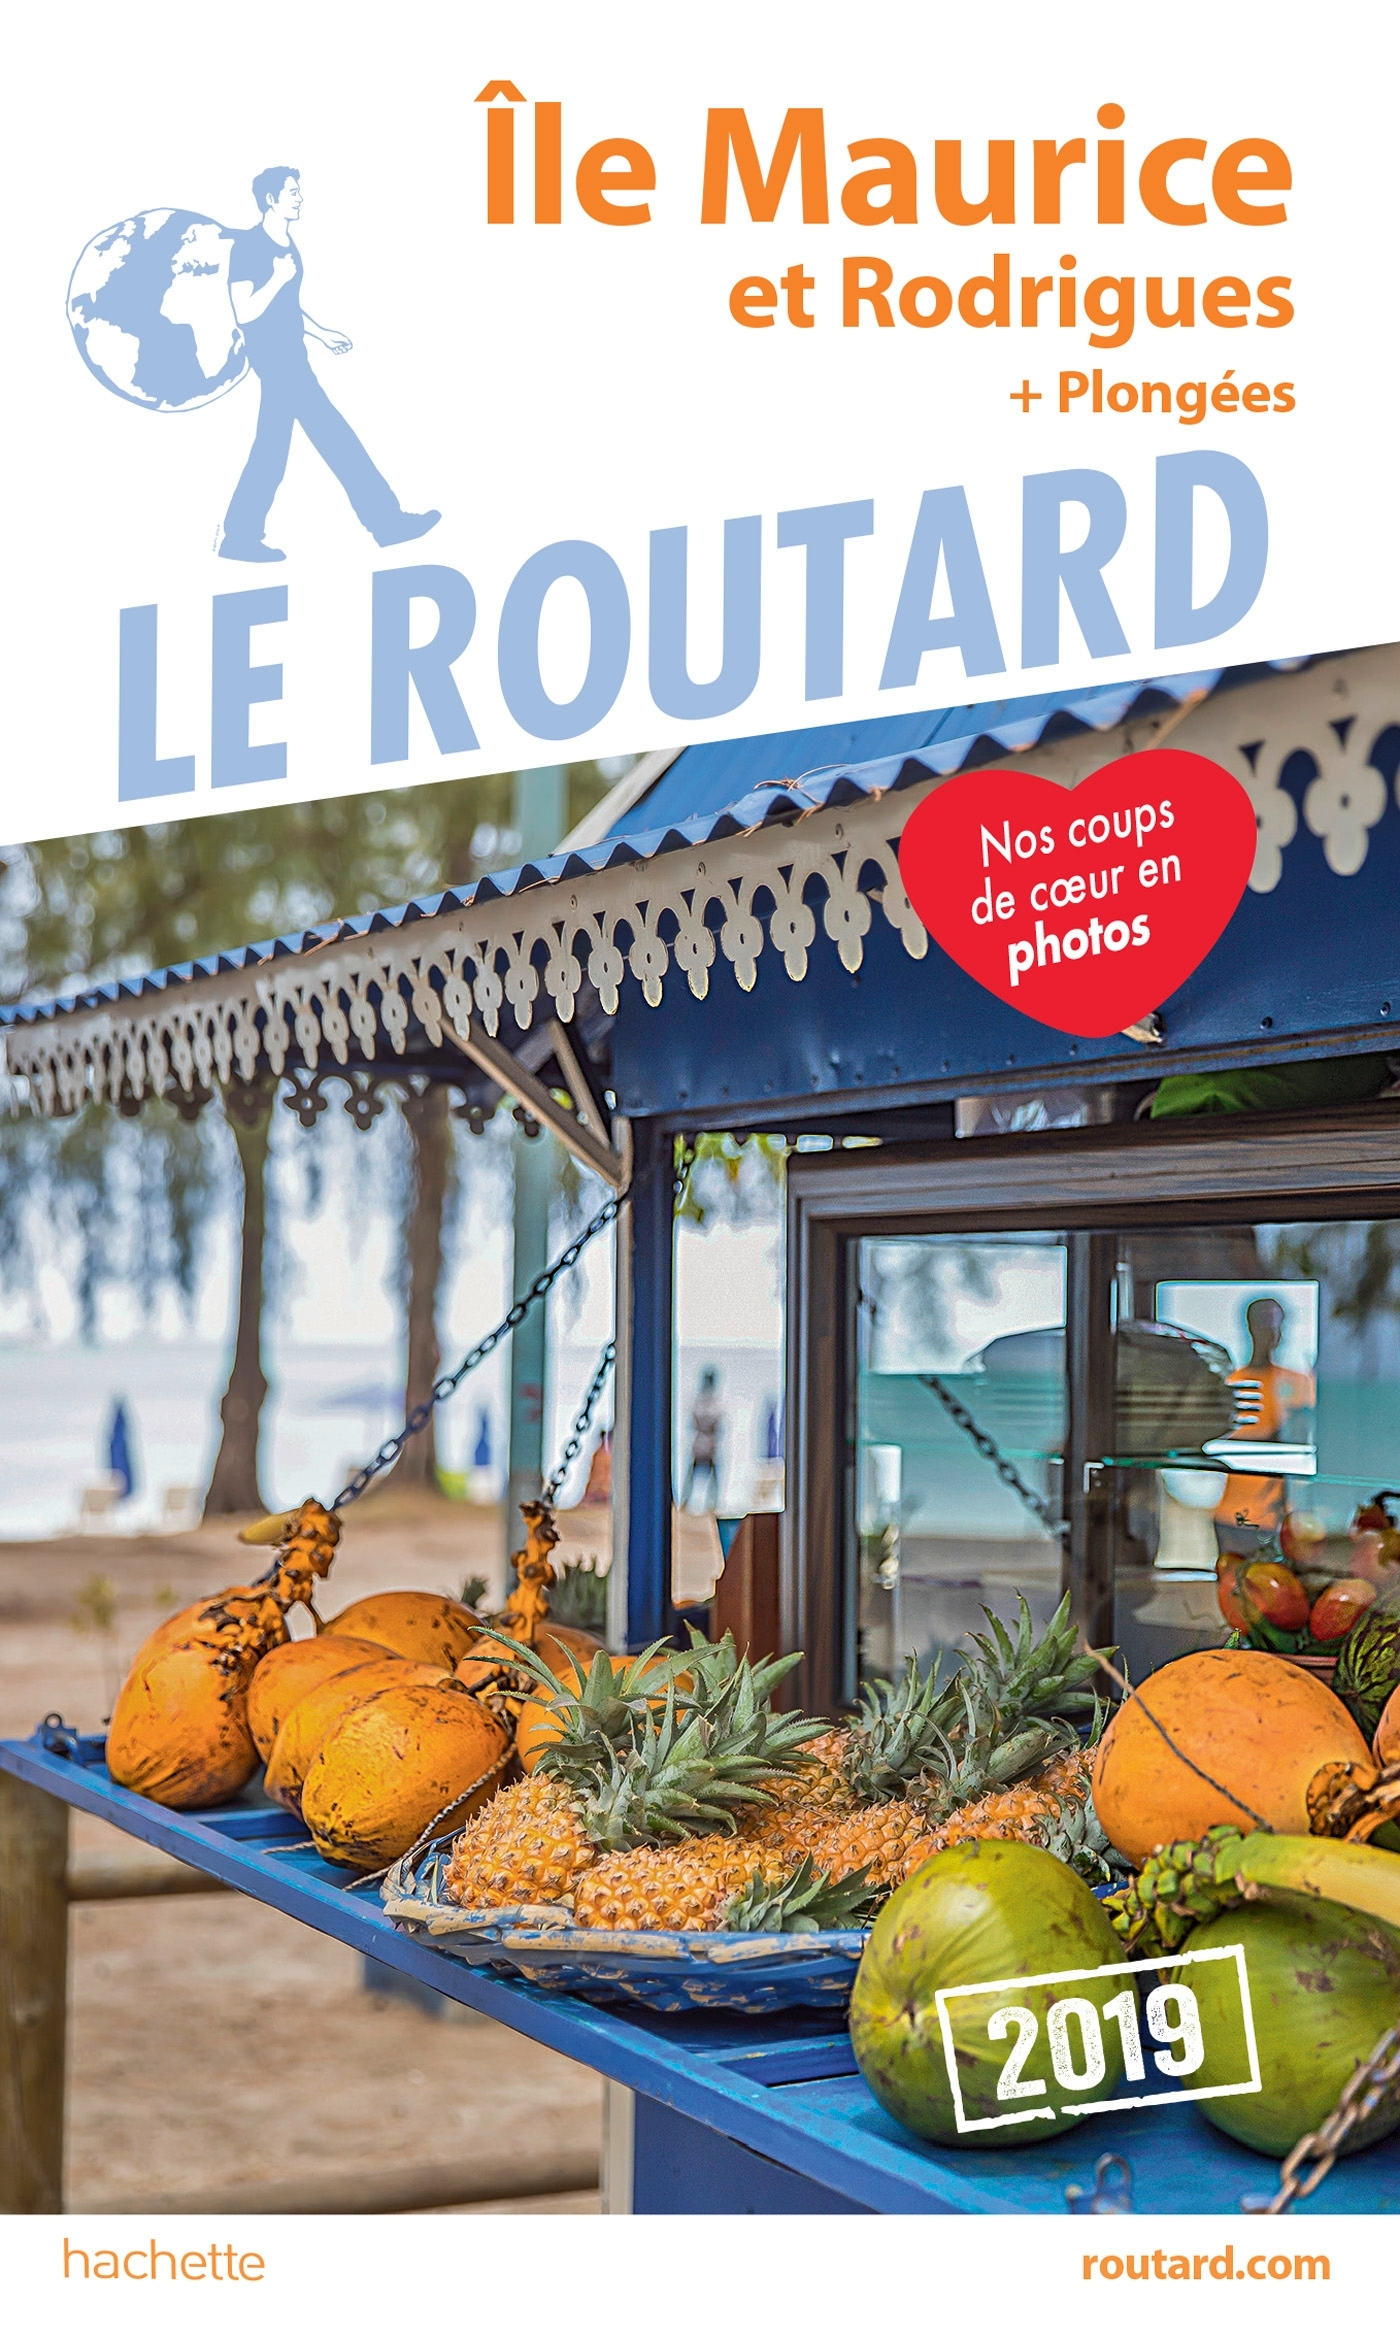 GUIDE DU ROUTARD ILE MAURICE ET RODRIGUES  2019 - (+ PLONGEES)